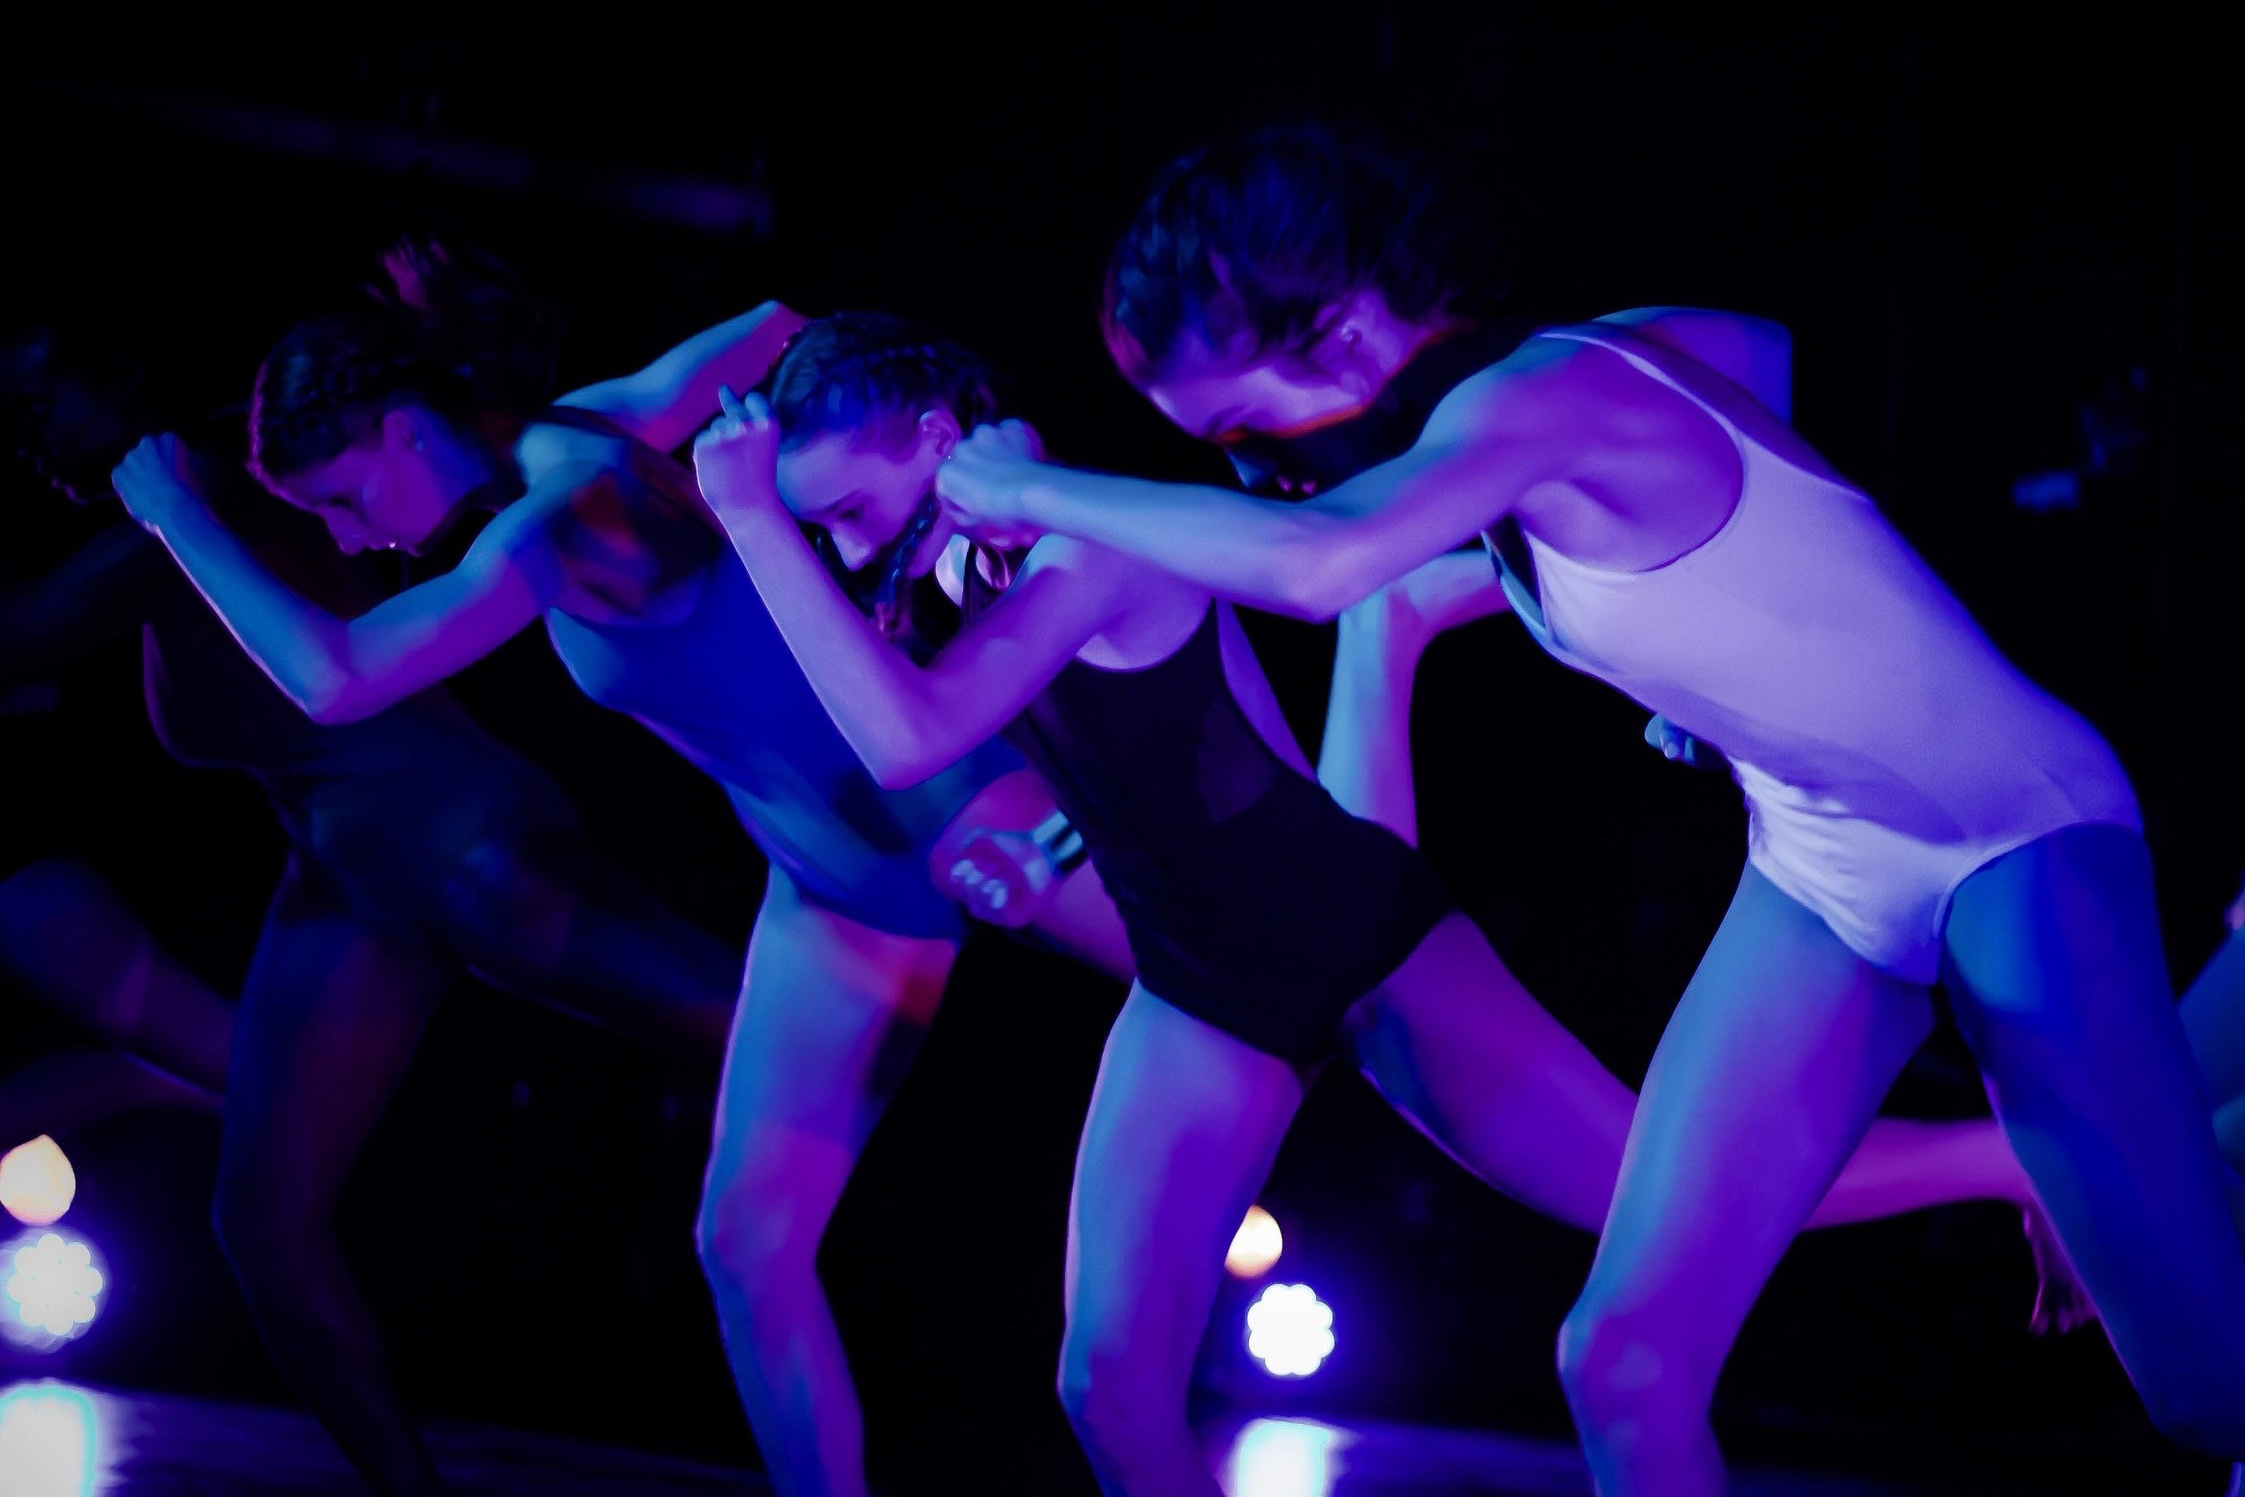 - OM still growing is an opportunity created for pre-professional dancers aged 12-17 years who are serious about contemporary dance and further developing their artistic voice. This young company is geared towards bridging the gap between extracurricular dance classes and professional dance opportunities, while fostering the pre-existing abilities that the dancers already obtains.Dancers who are selected from the audition, will take weekly class with their assigned OM still growing company and prepare for their production in April 2020. This year the company will be divided into 2 tracks; OM still growing and OM still growing II (training company).